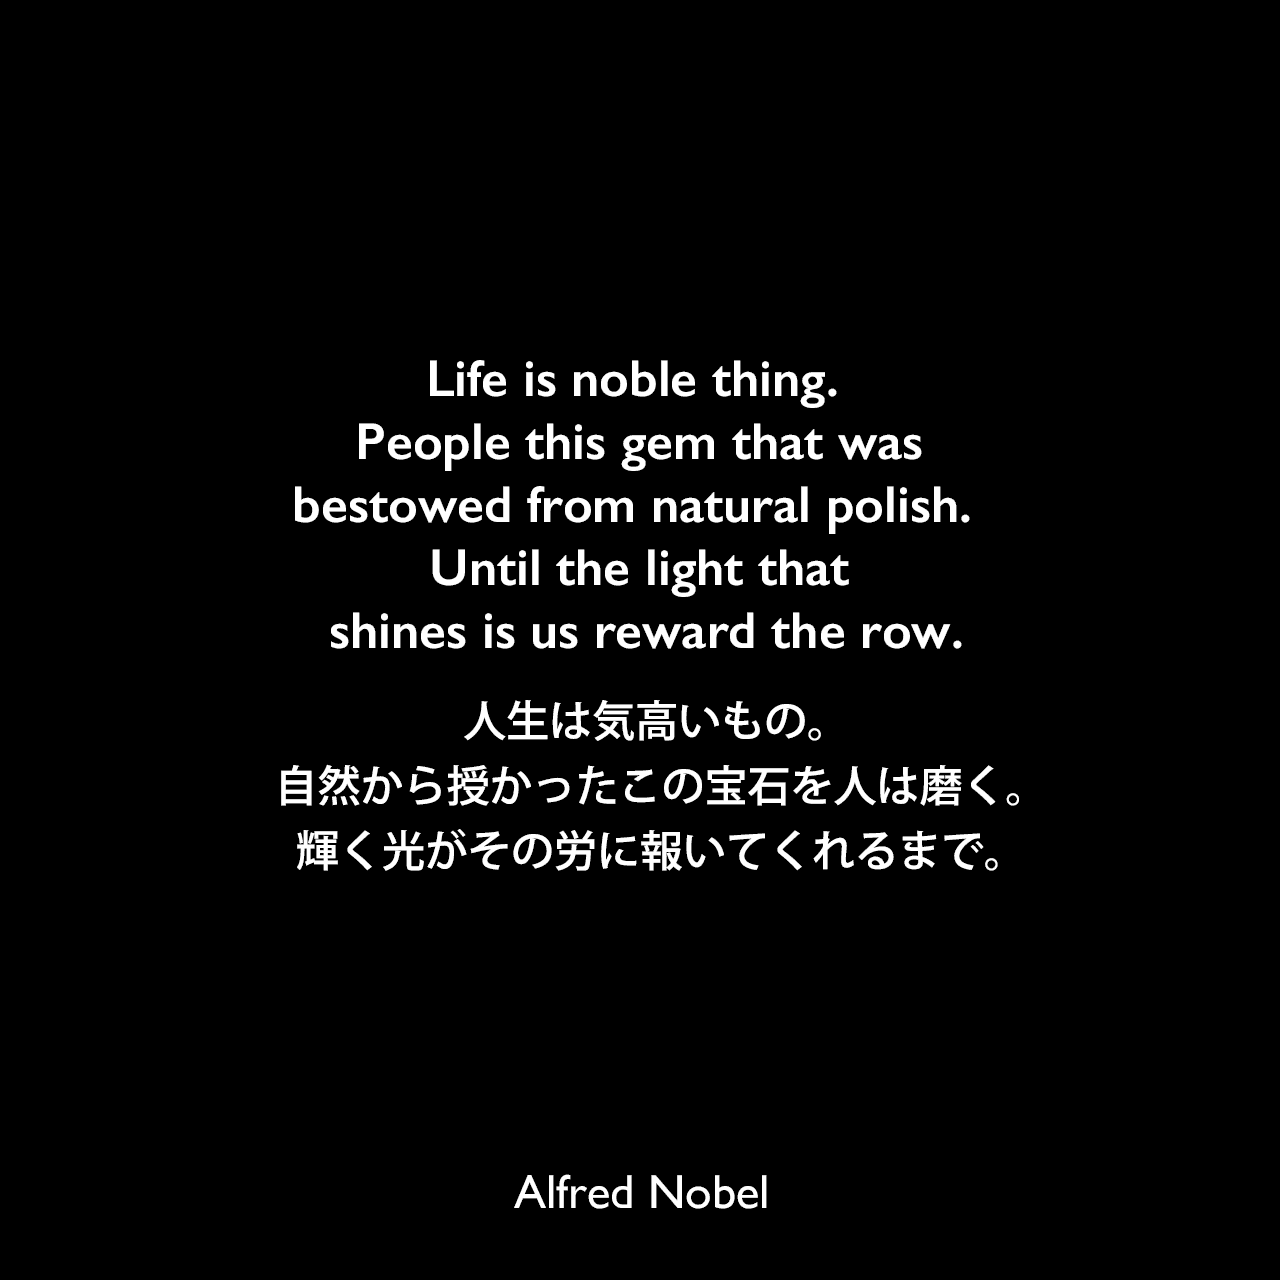 Life is noble thing.  People this gem that was bestowed from natural polish.  Until the light that shines is us reward the row.人生は気高いもの。 自然から授かったこの宝石を人は磨く。 輝く光がその労に報いてくれるまで。Alfred Nobel